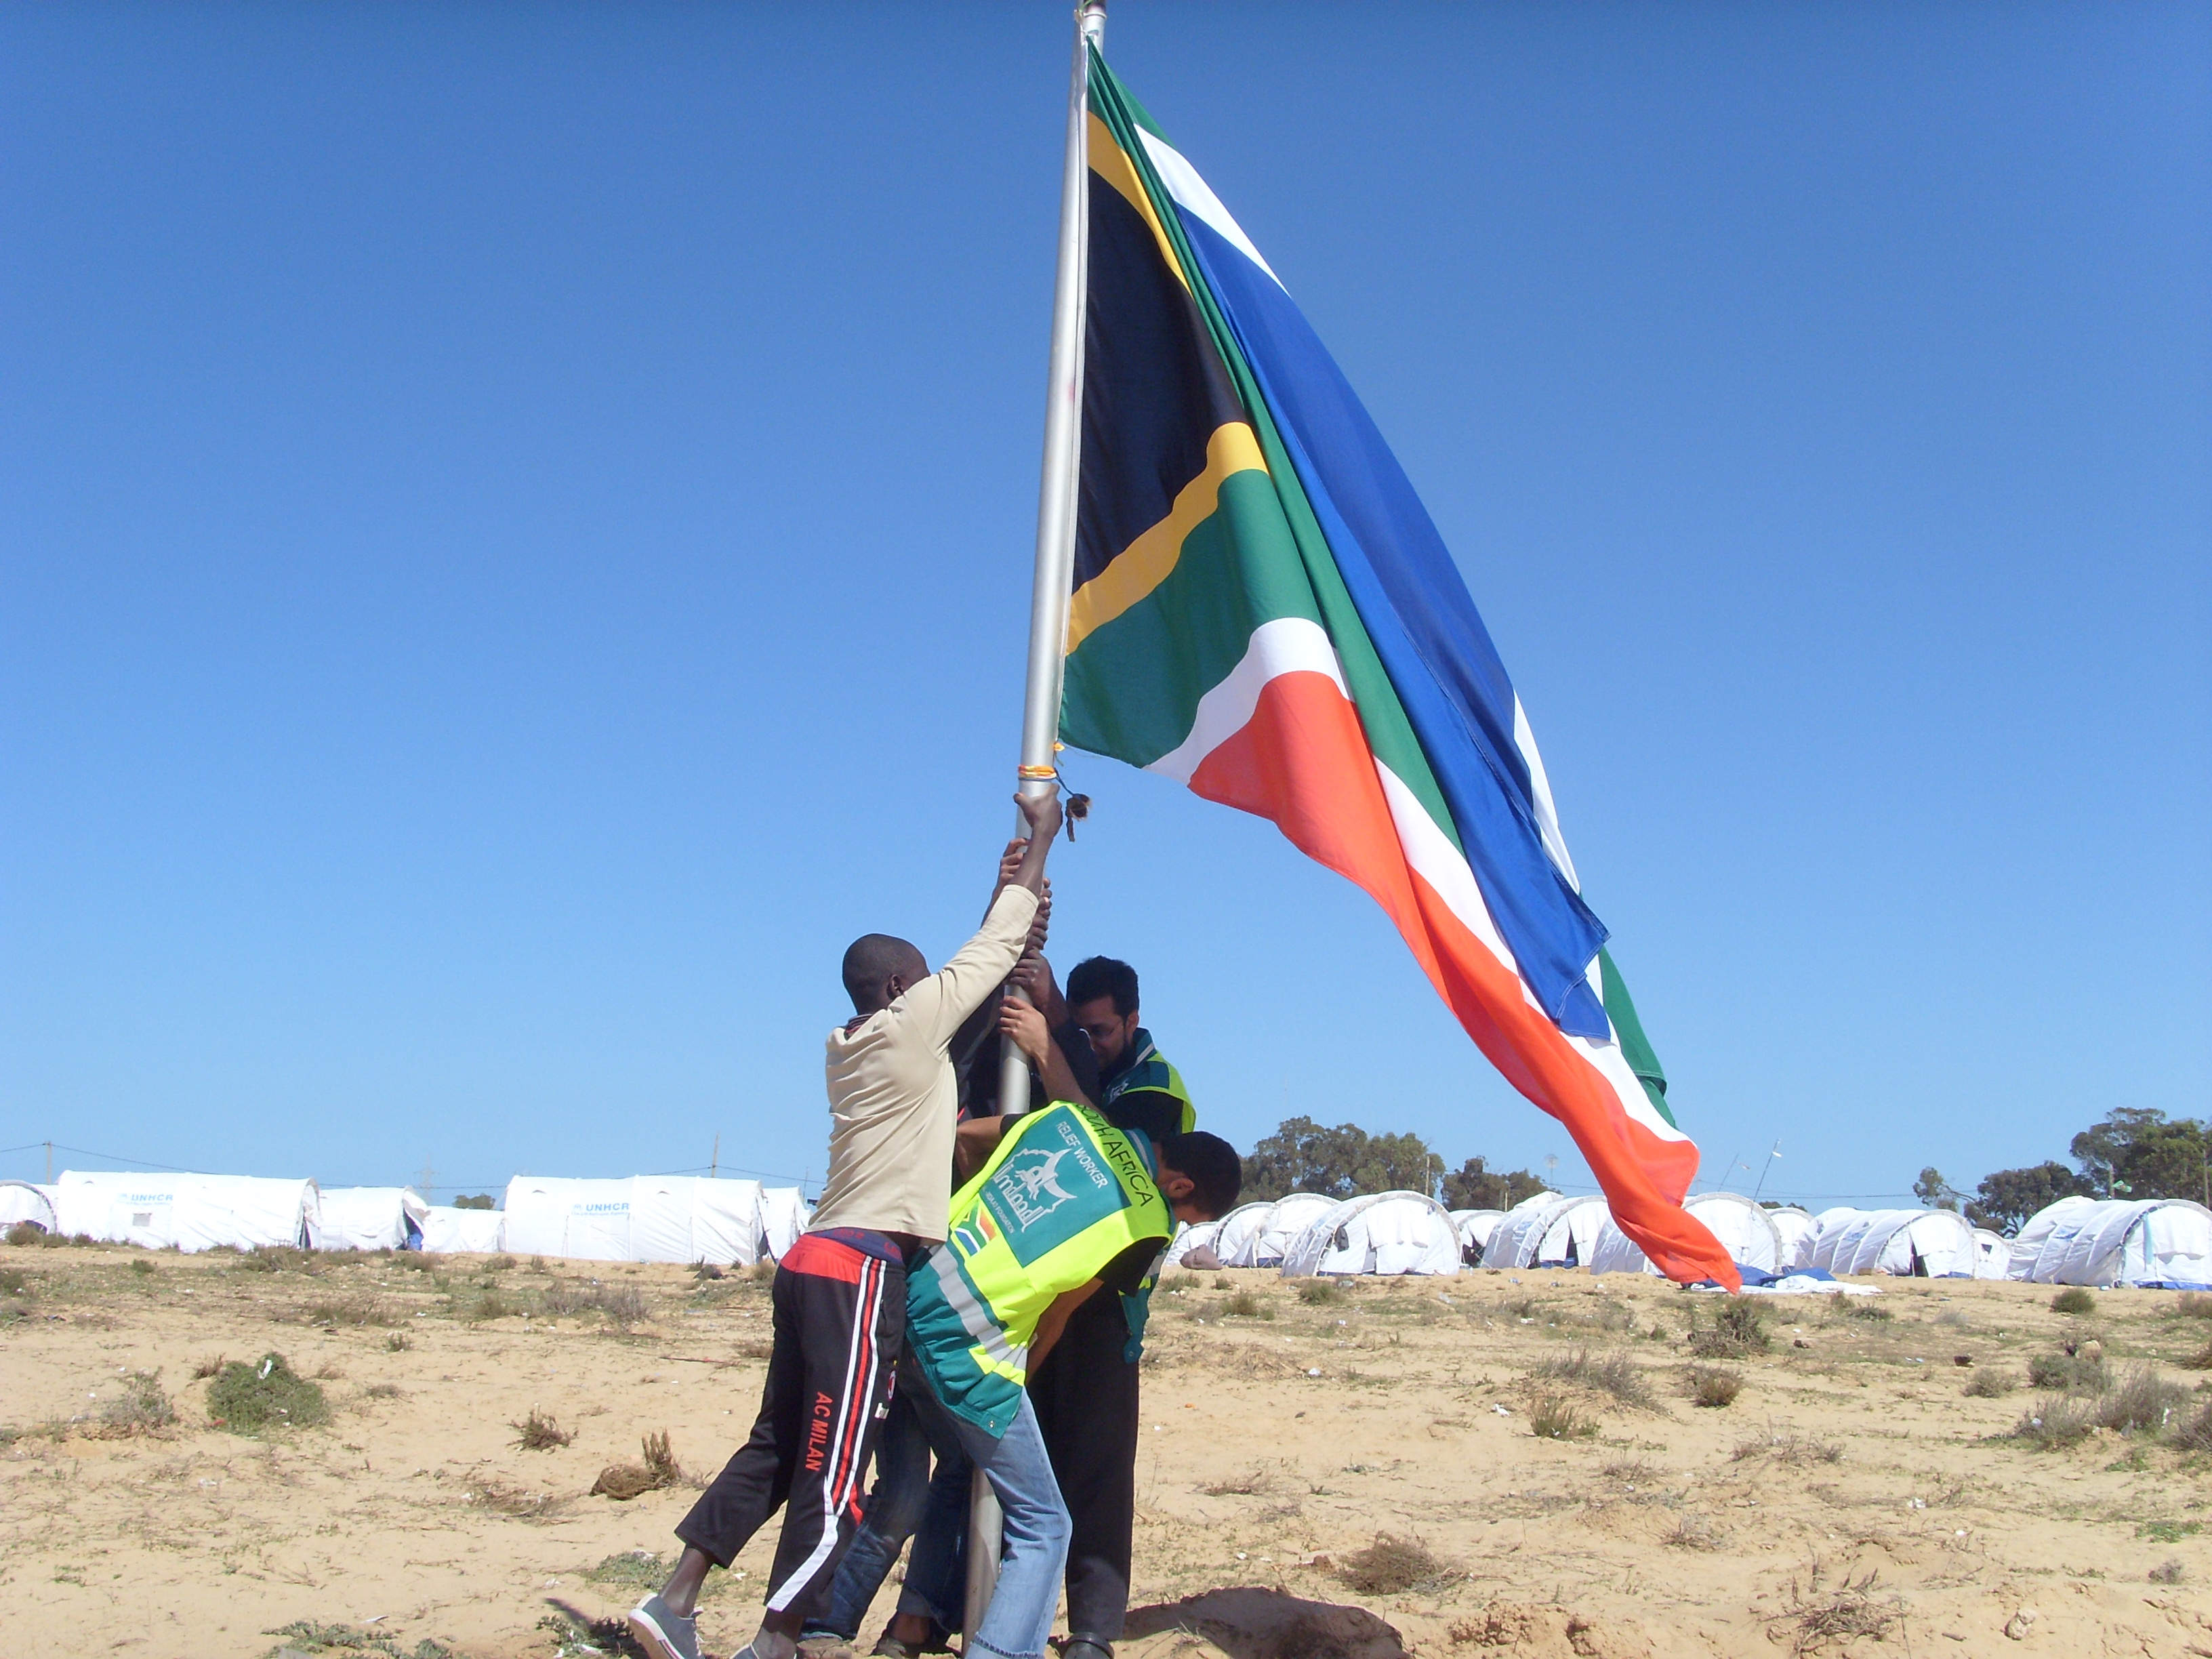 Establishing a strong South African presence at the Choucha Refugee Camp in Tunisia